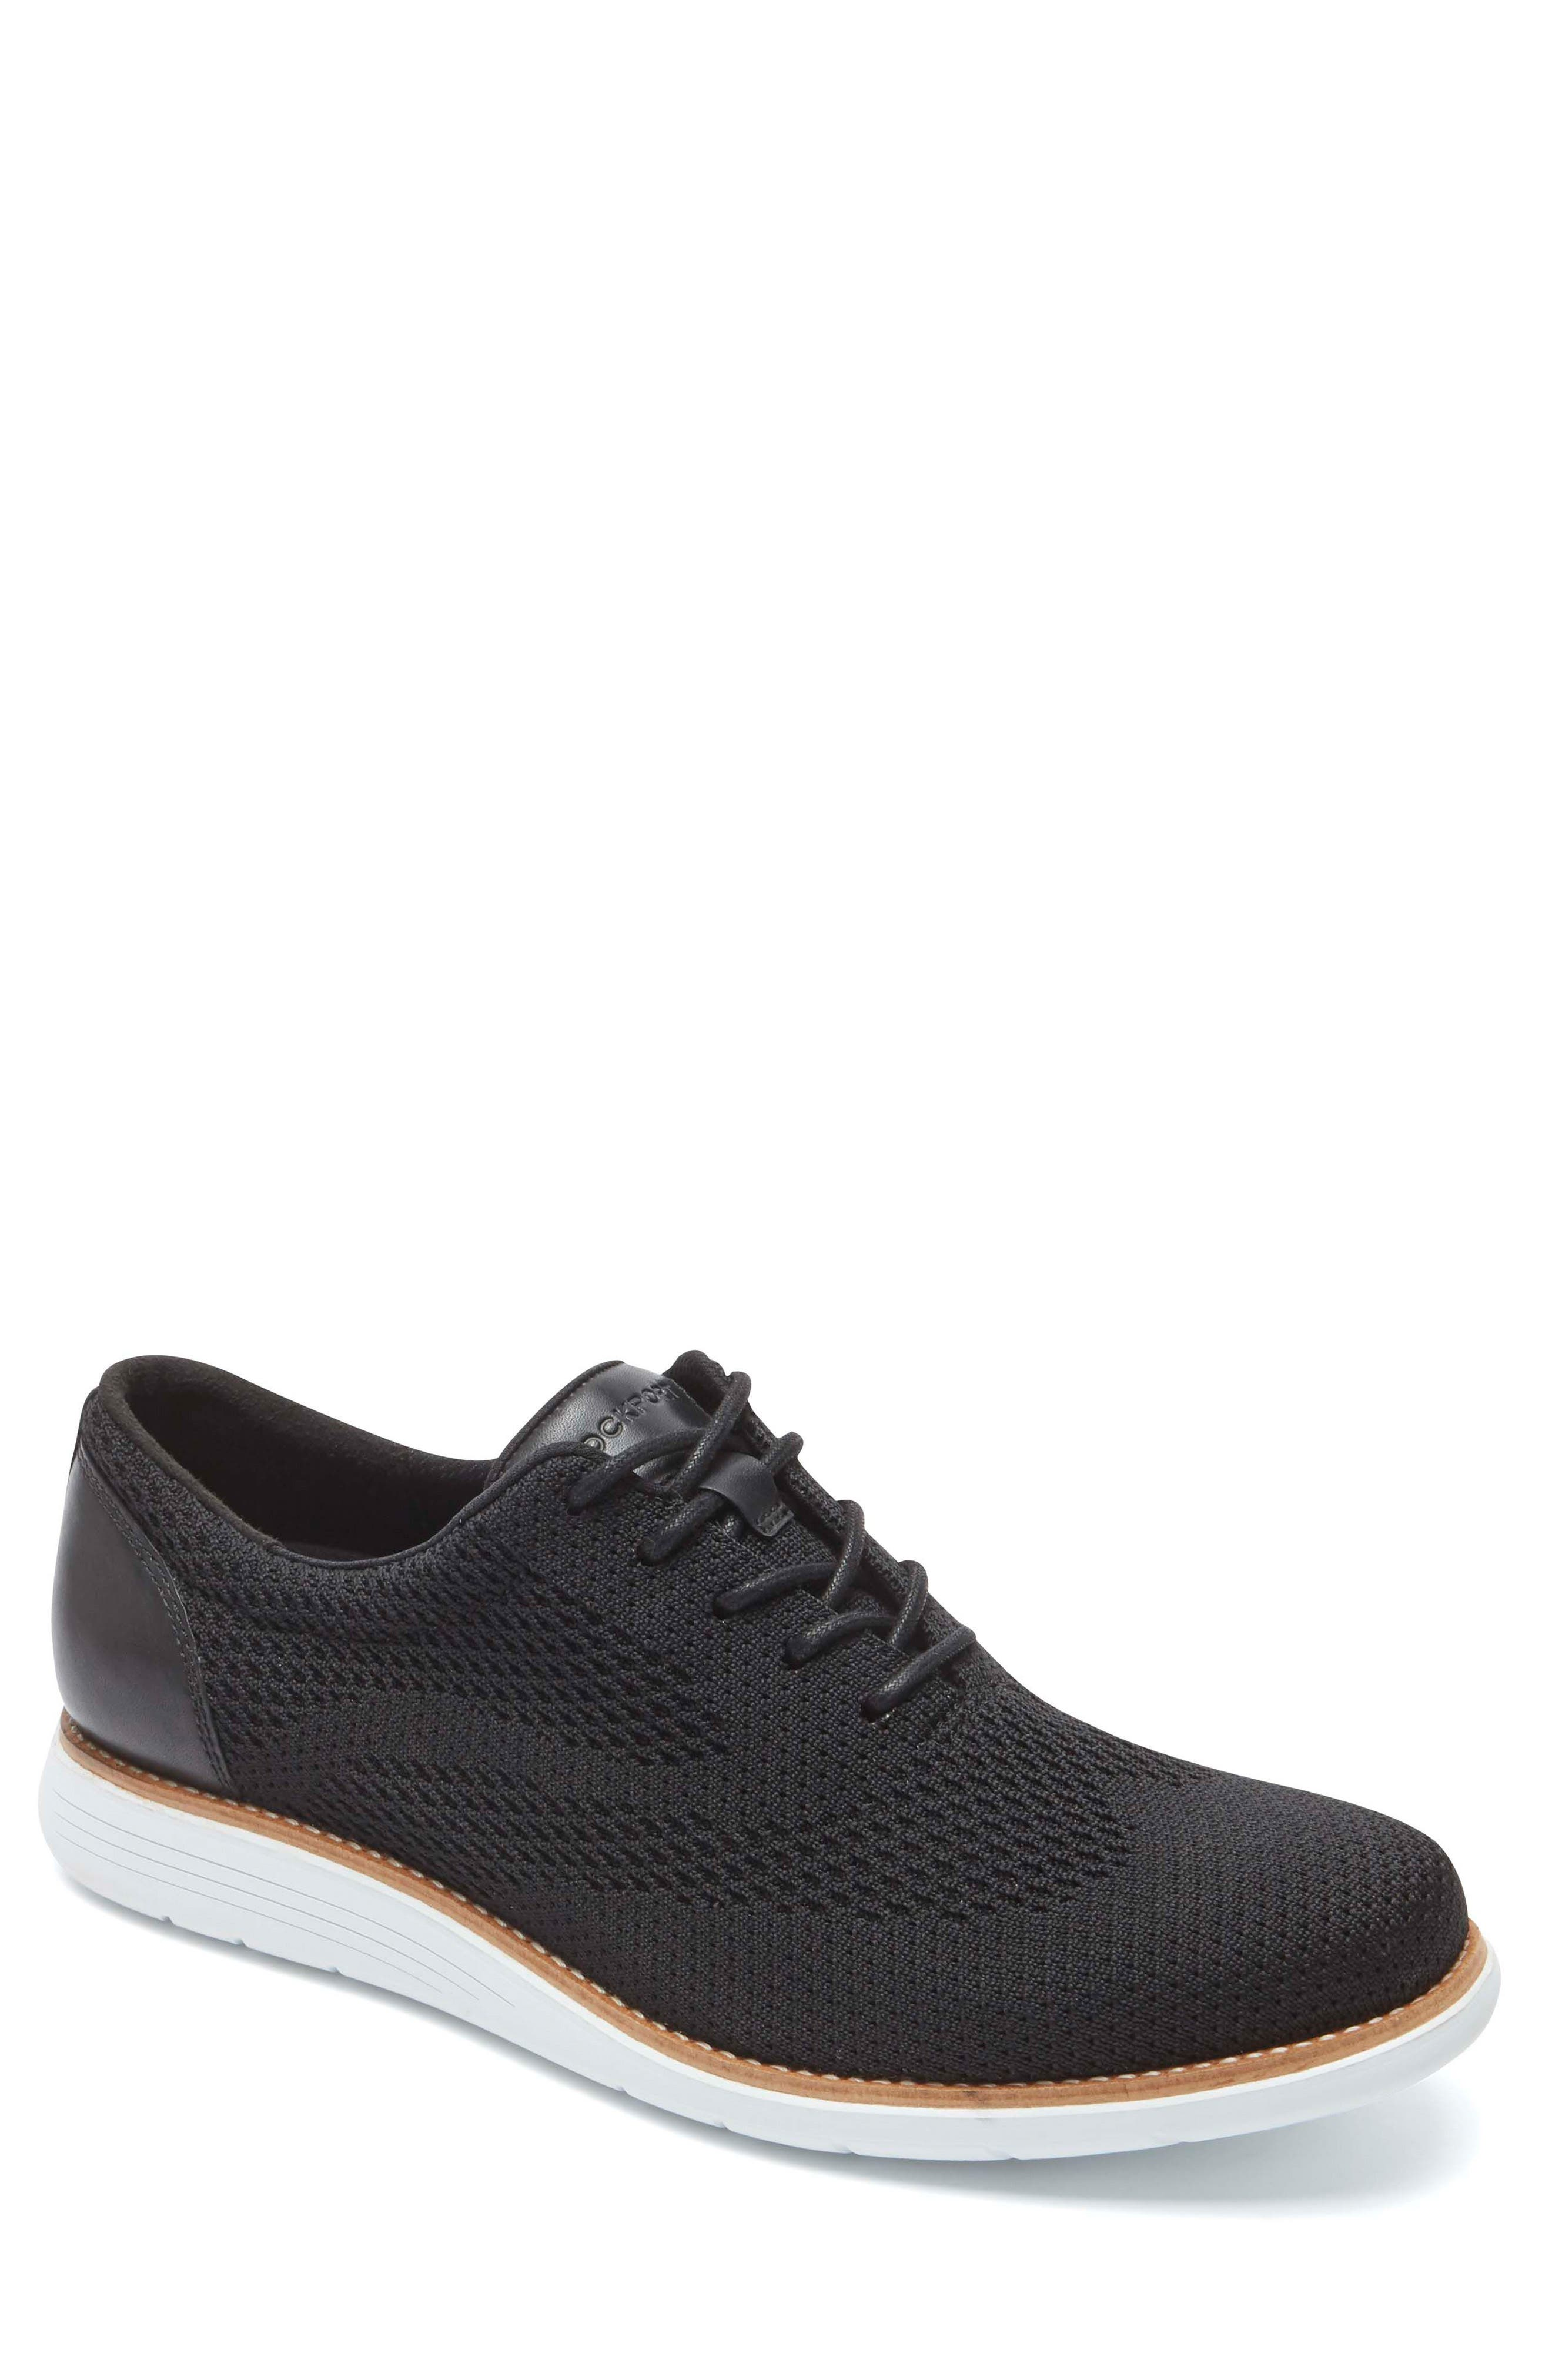 Total Motion Sport Oxford,                             Main thumbnail 1, color,                             Black Leather